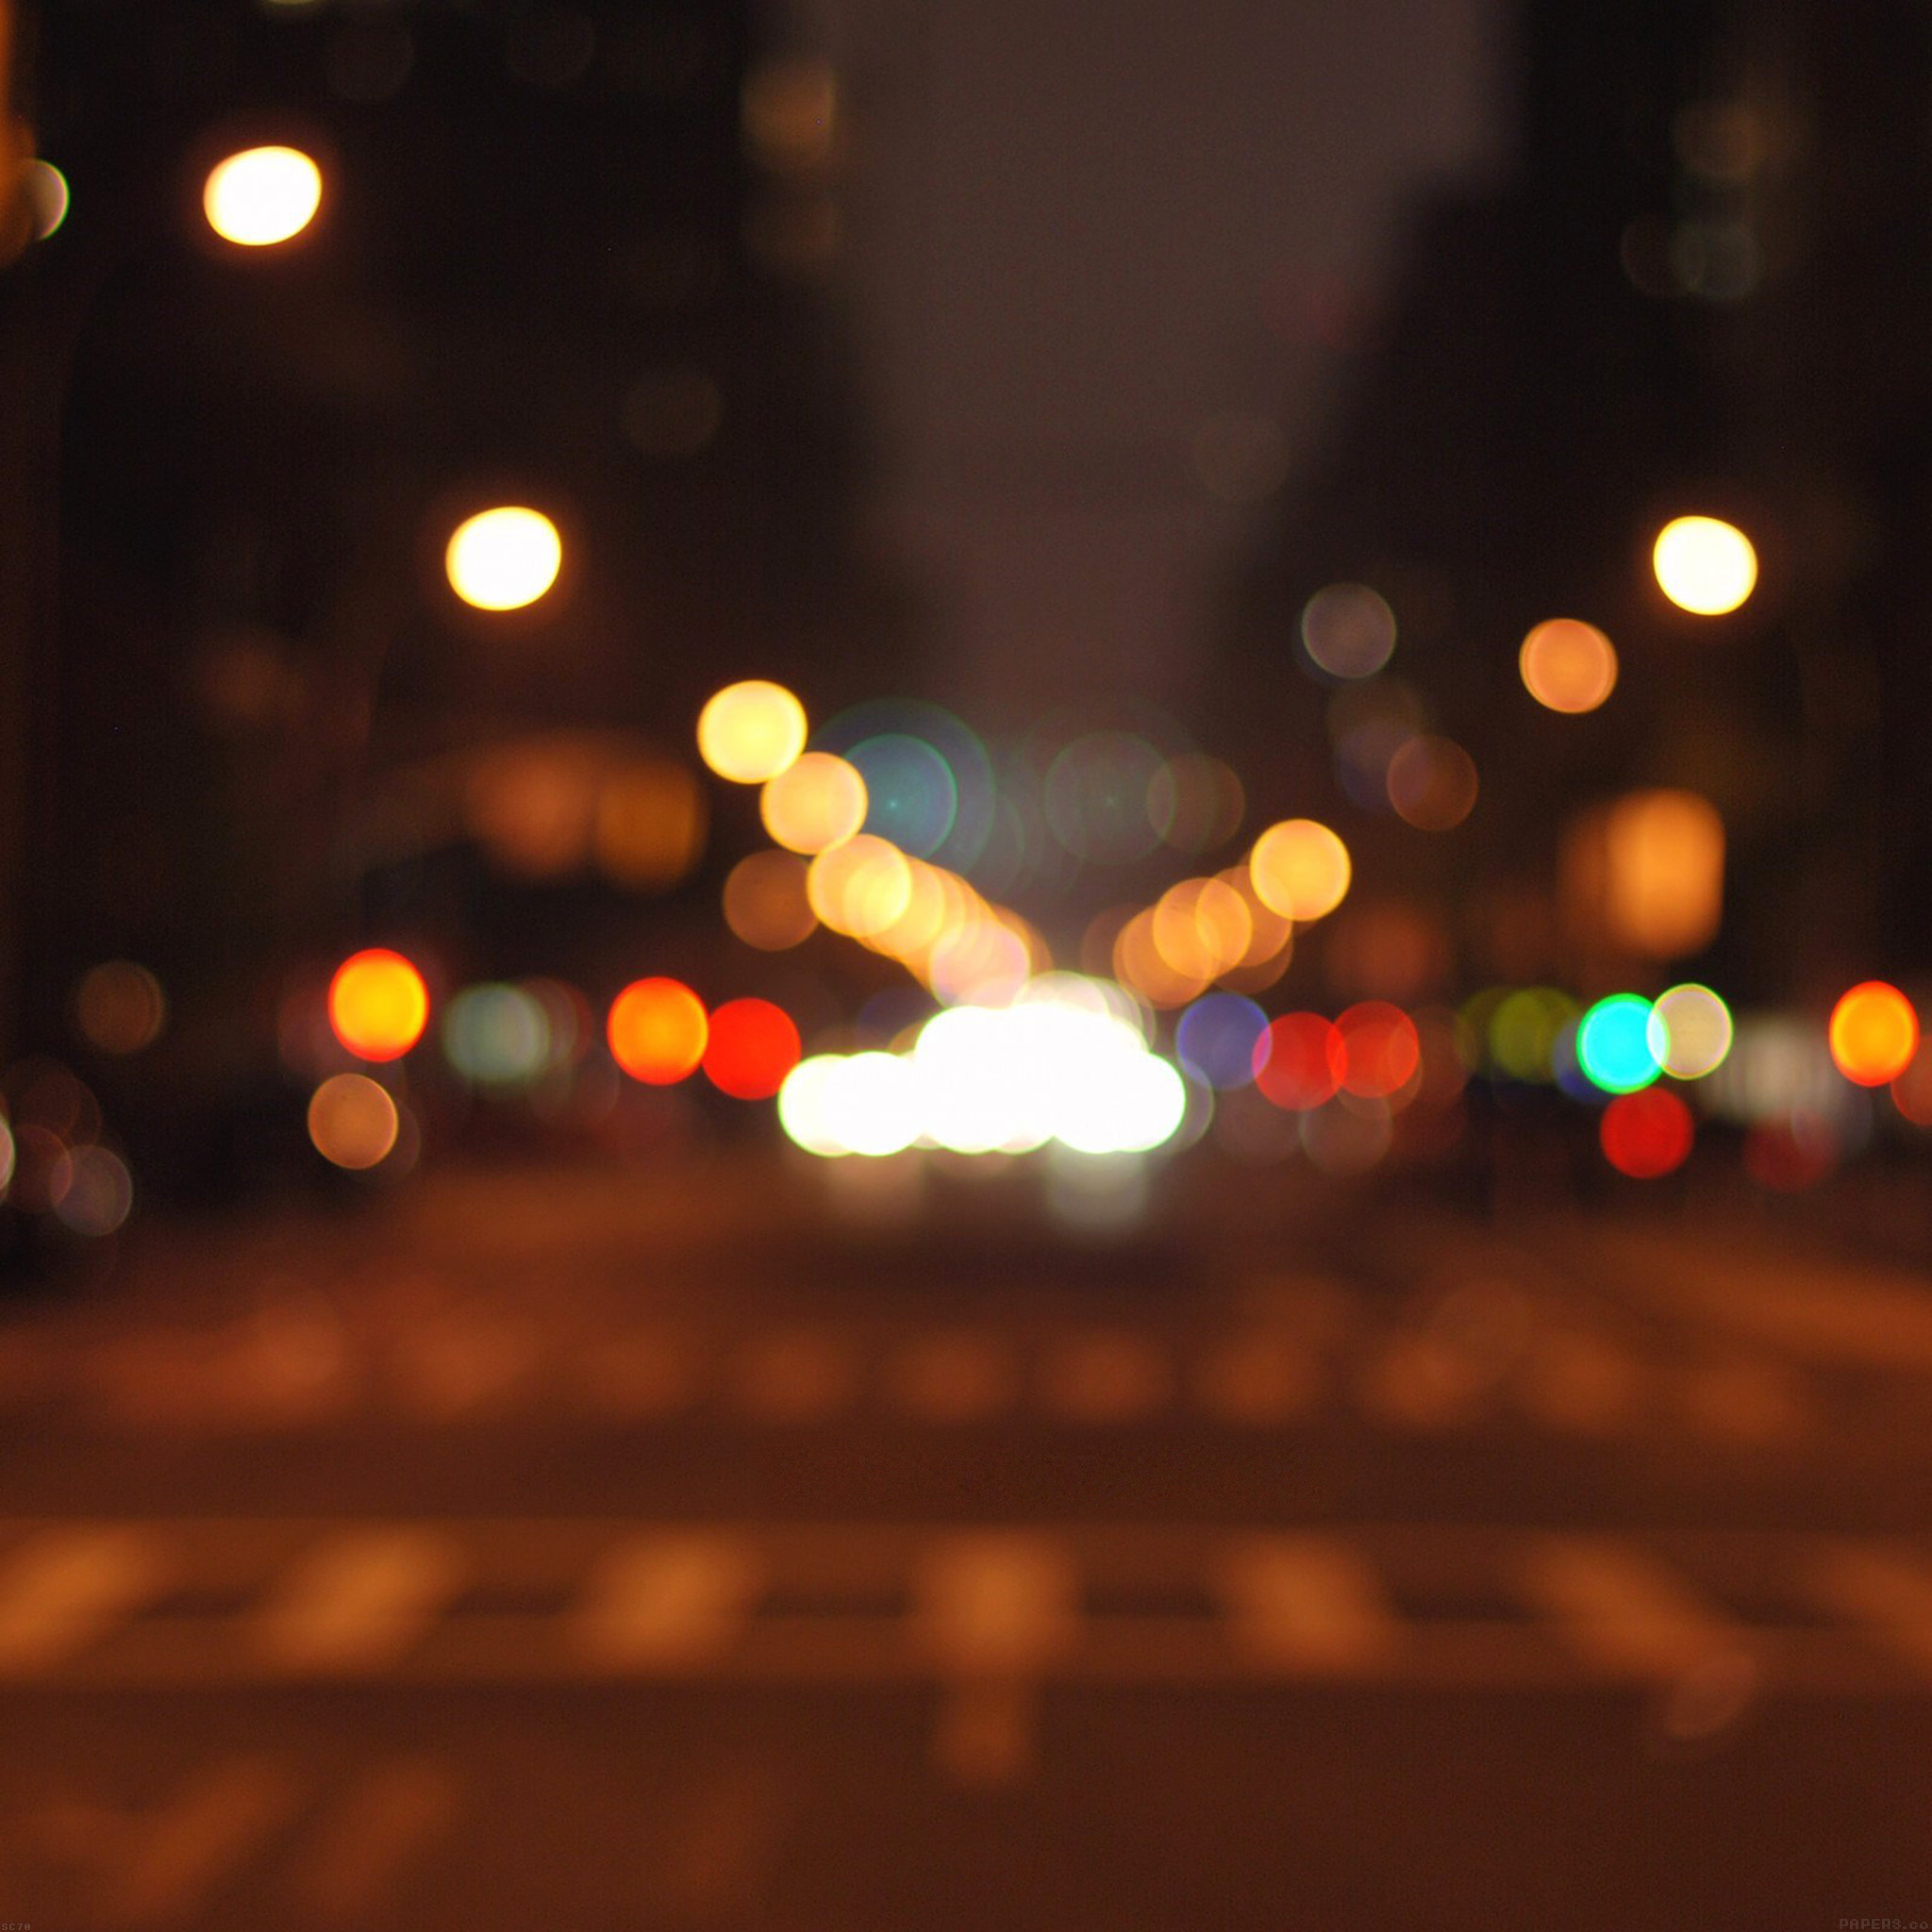 Car Wallpaper Samsung Mh60 8th Avenue Chelsea Manhattan Newyork Bokeh City